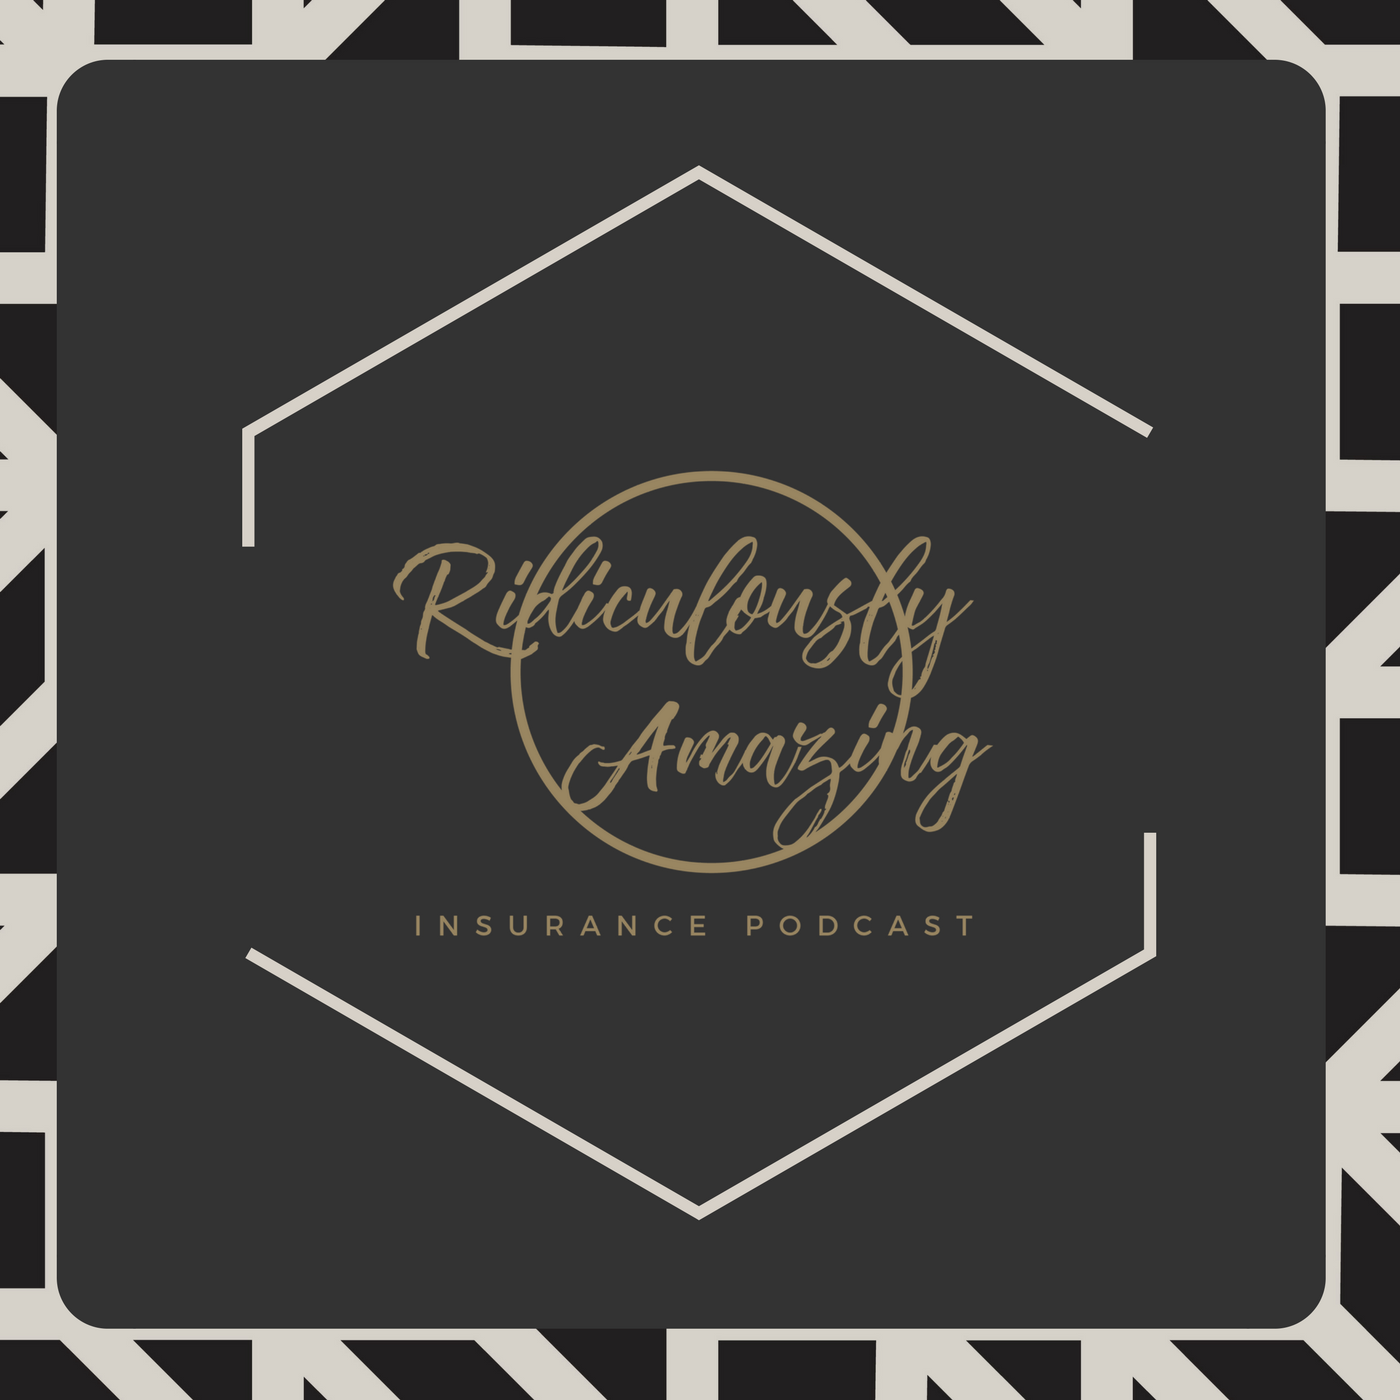 Ridiculously Amazing Insurance Podcast - October 2020